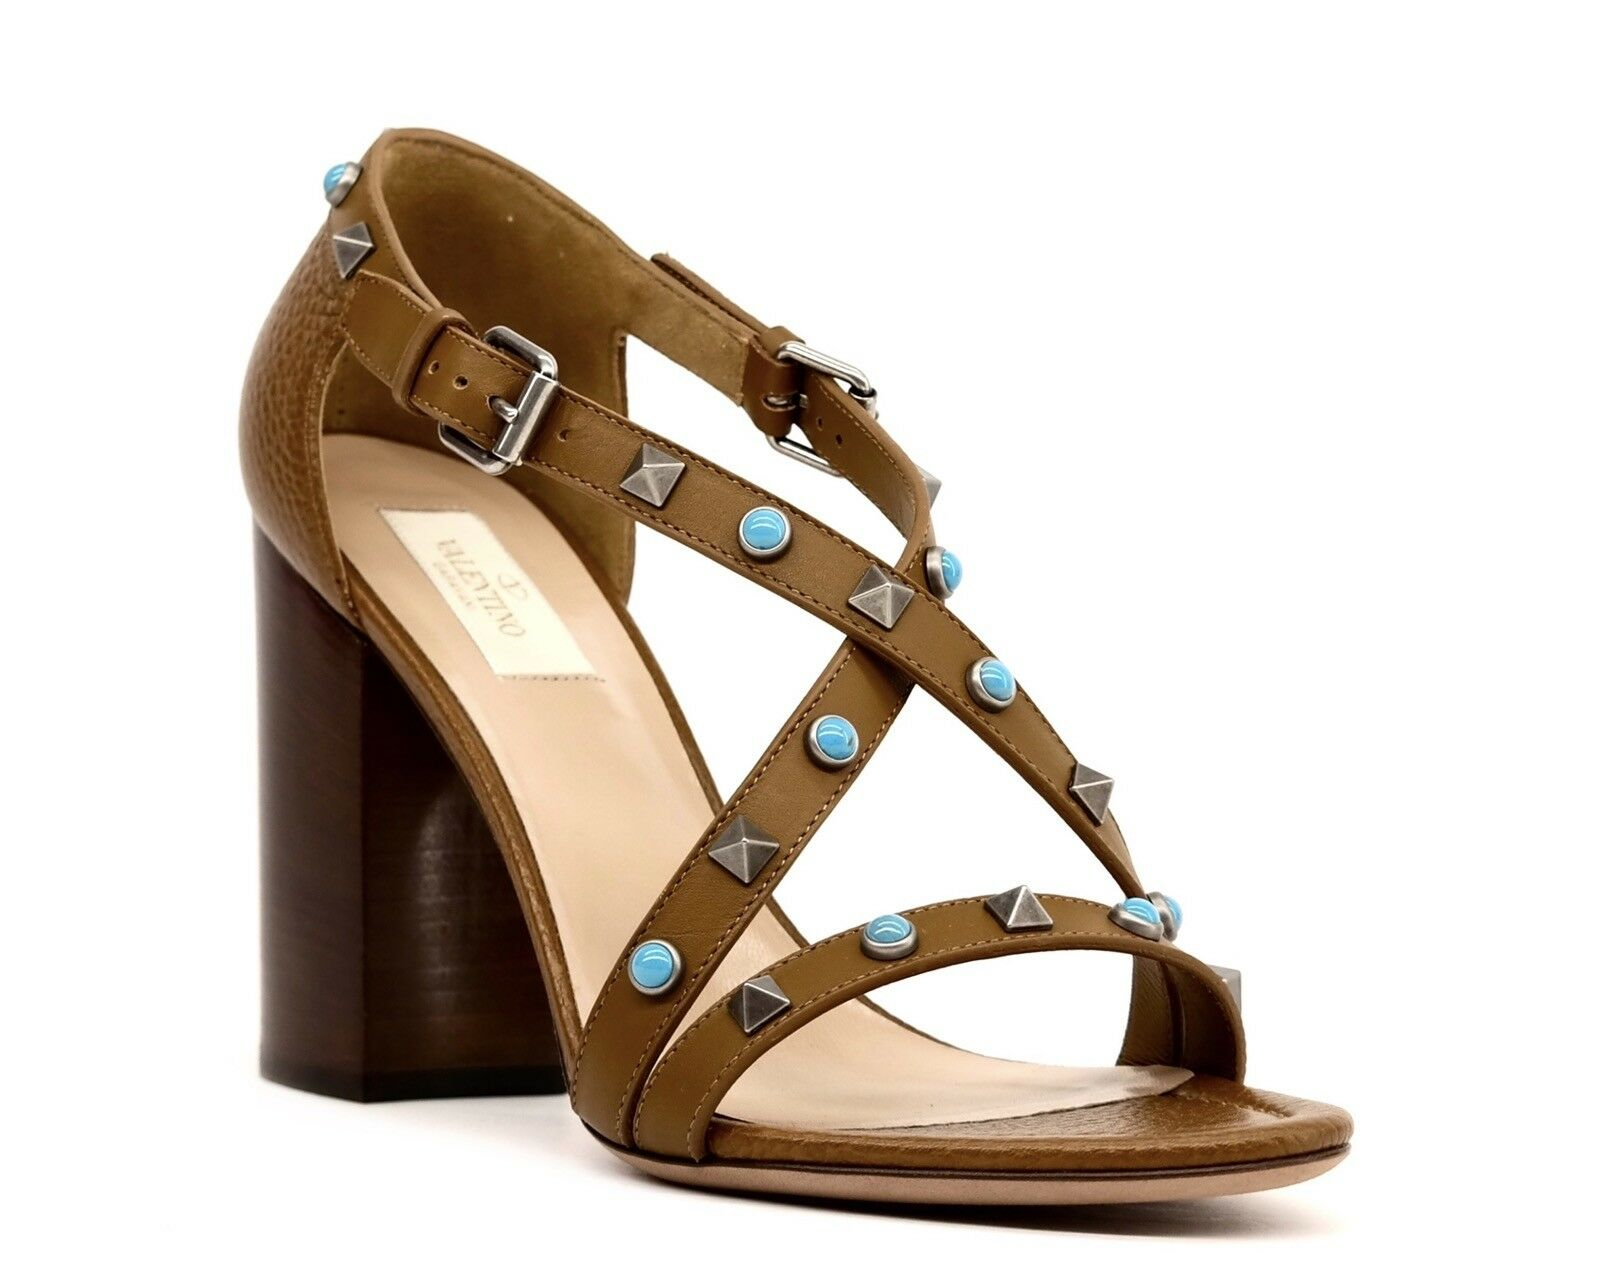 1045 Valentino Garavani Rockstud Cross Strap Sandals Size 9 39 New